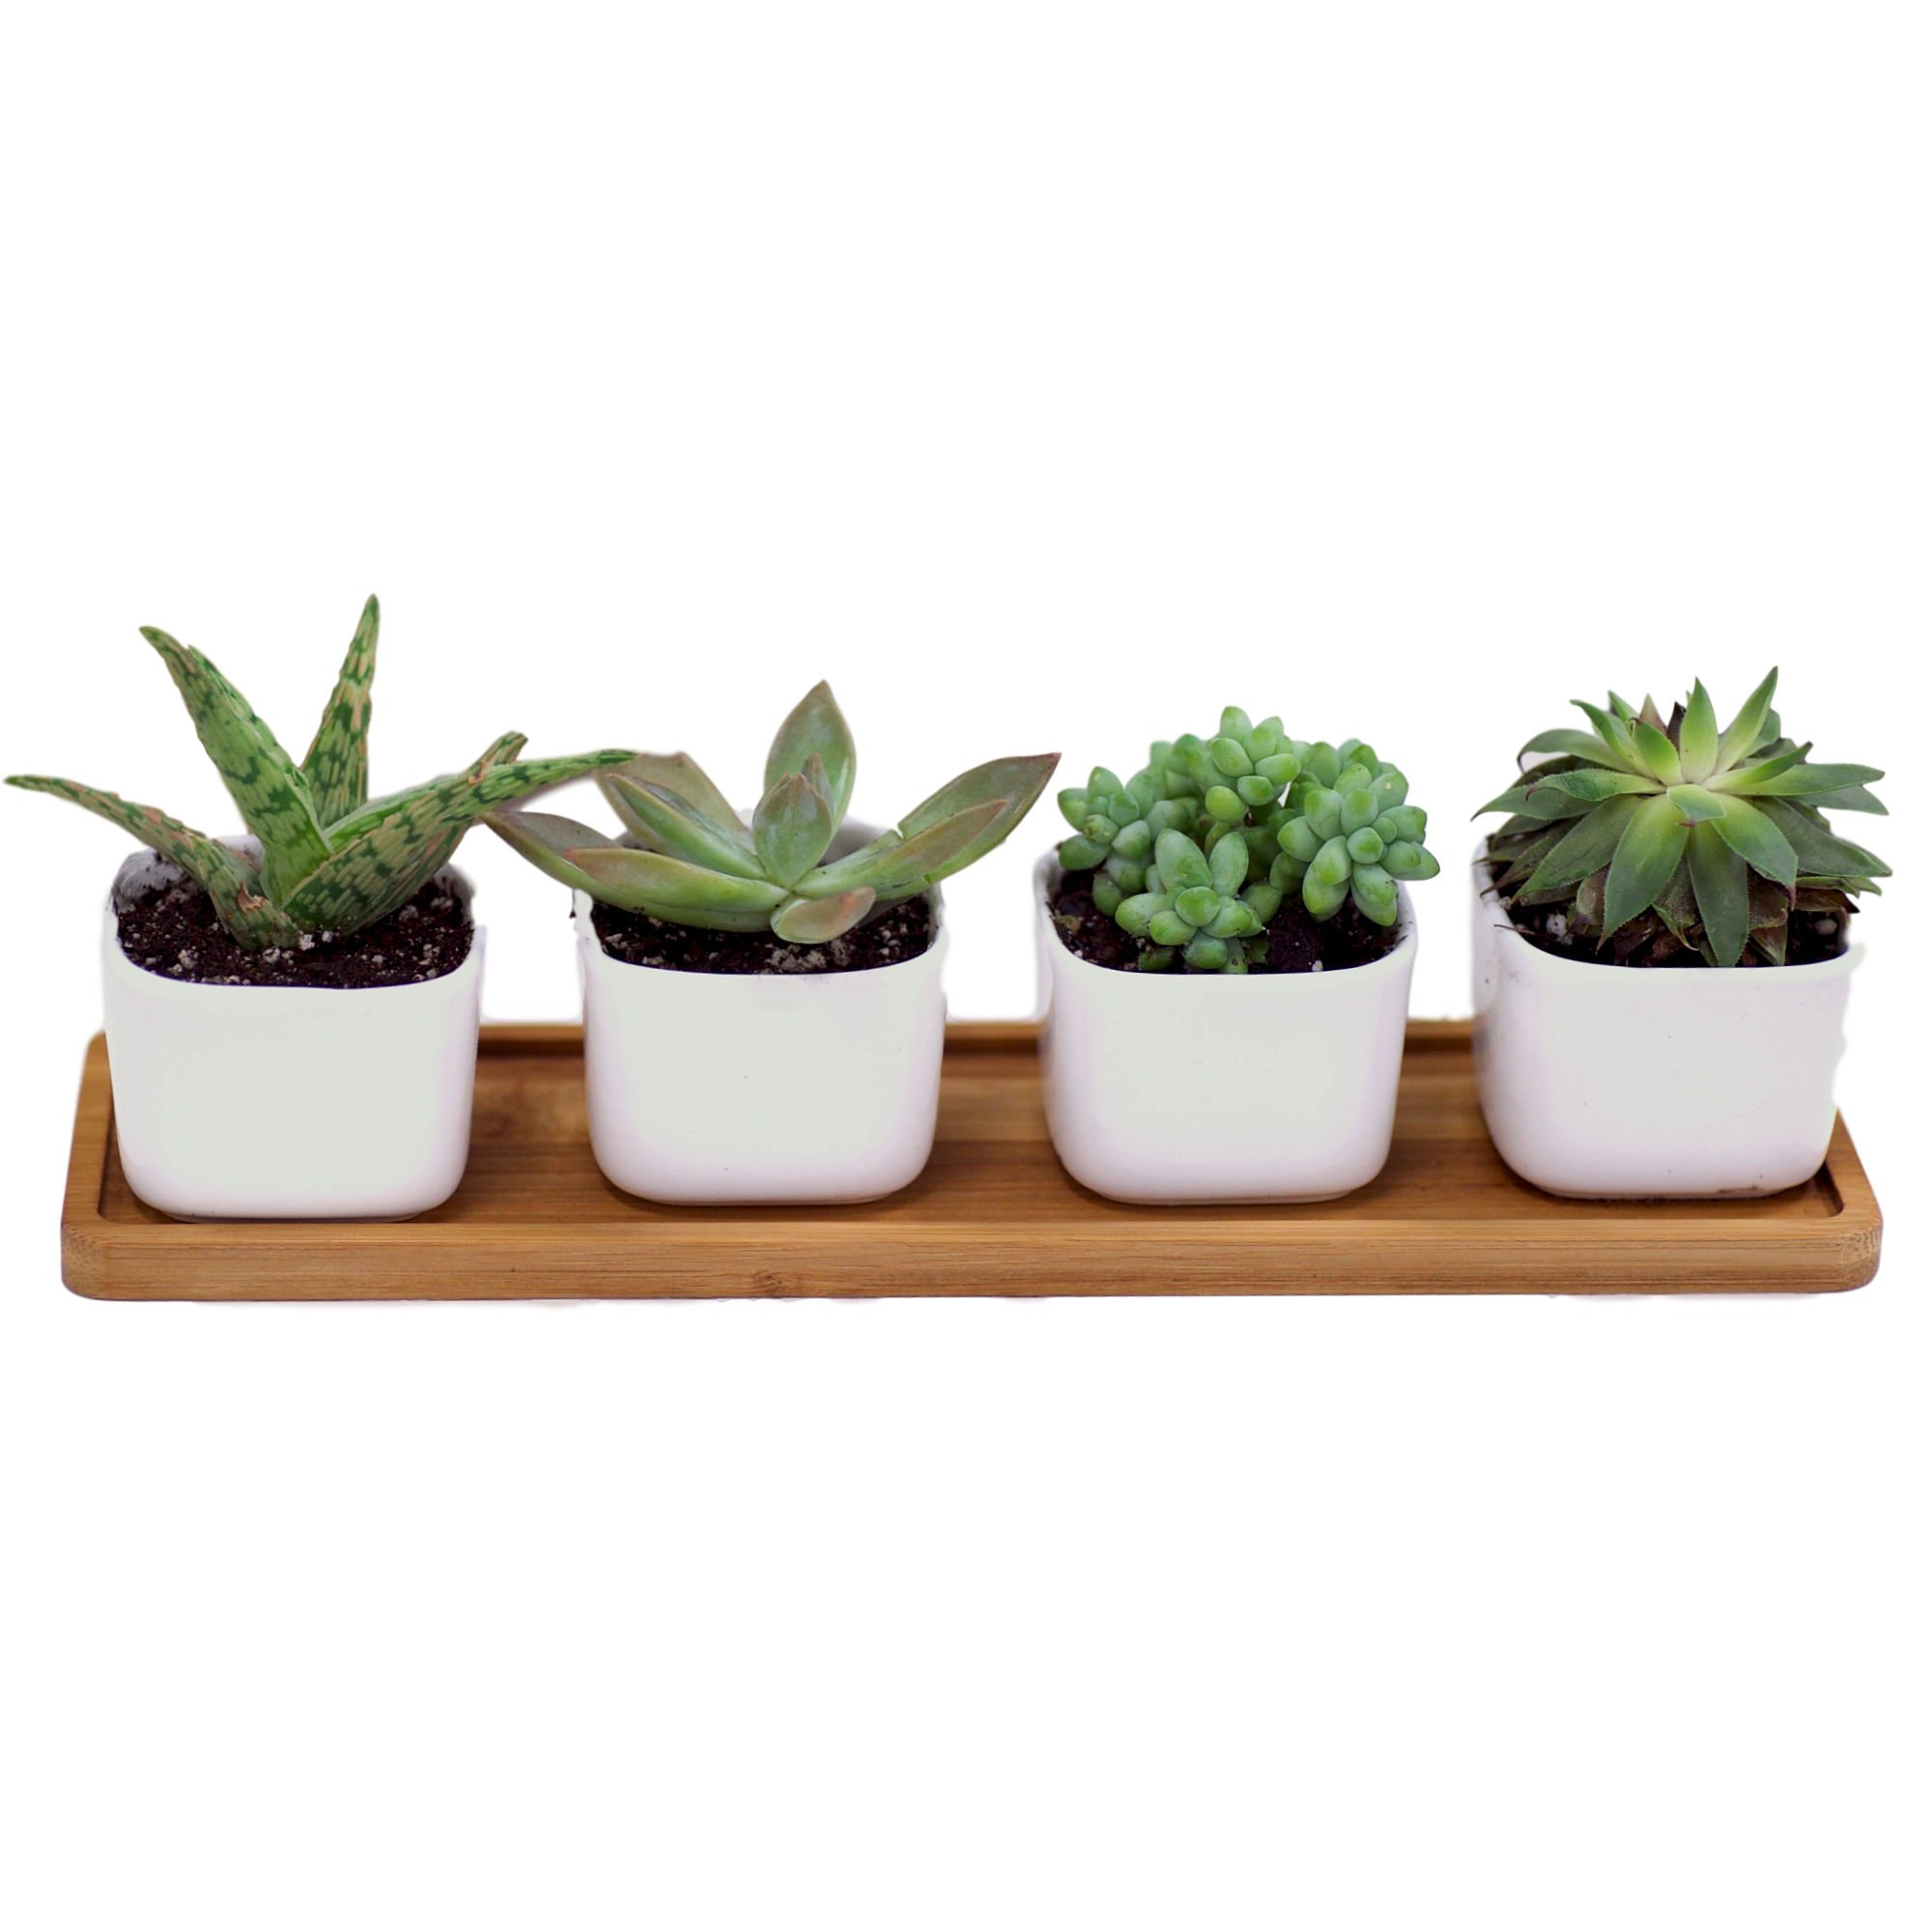 Mini Succulent Pots for Windowsill Or Bookshelf – 4-Piece White Ceramic Plant Pots – Wooden Tray Included – Minimalist Elegant Design – Bottom Holes for Draining – Ideal for Small Flowers, Cactus by Mini Gardener